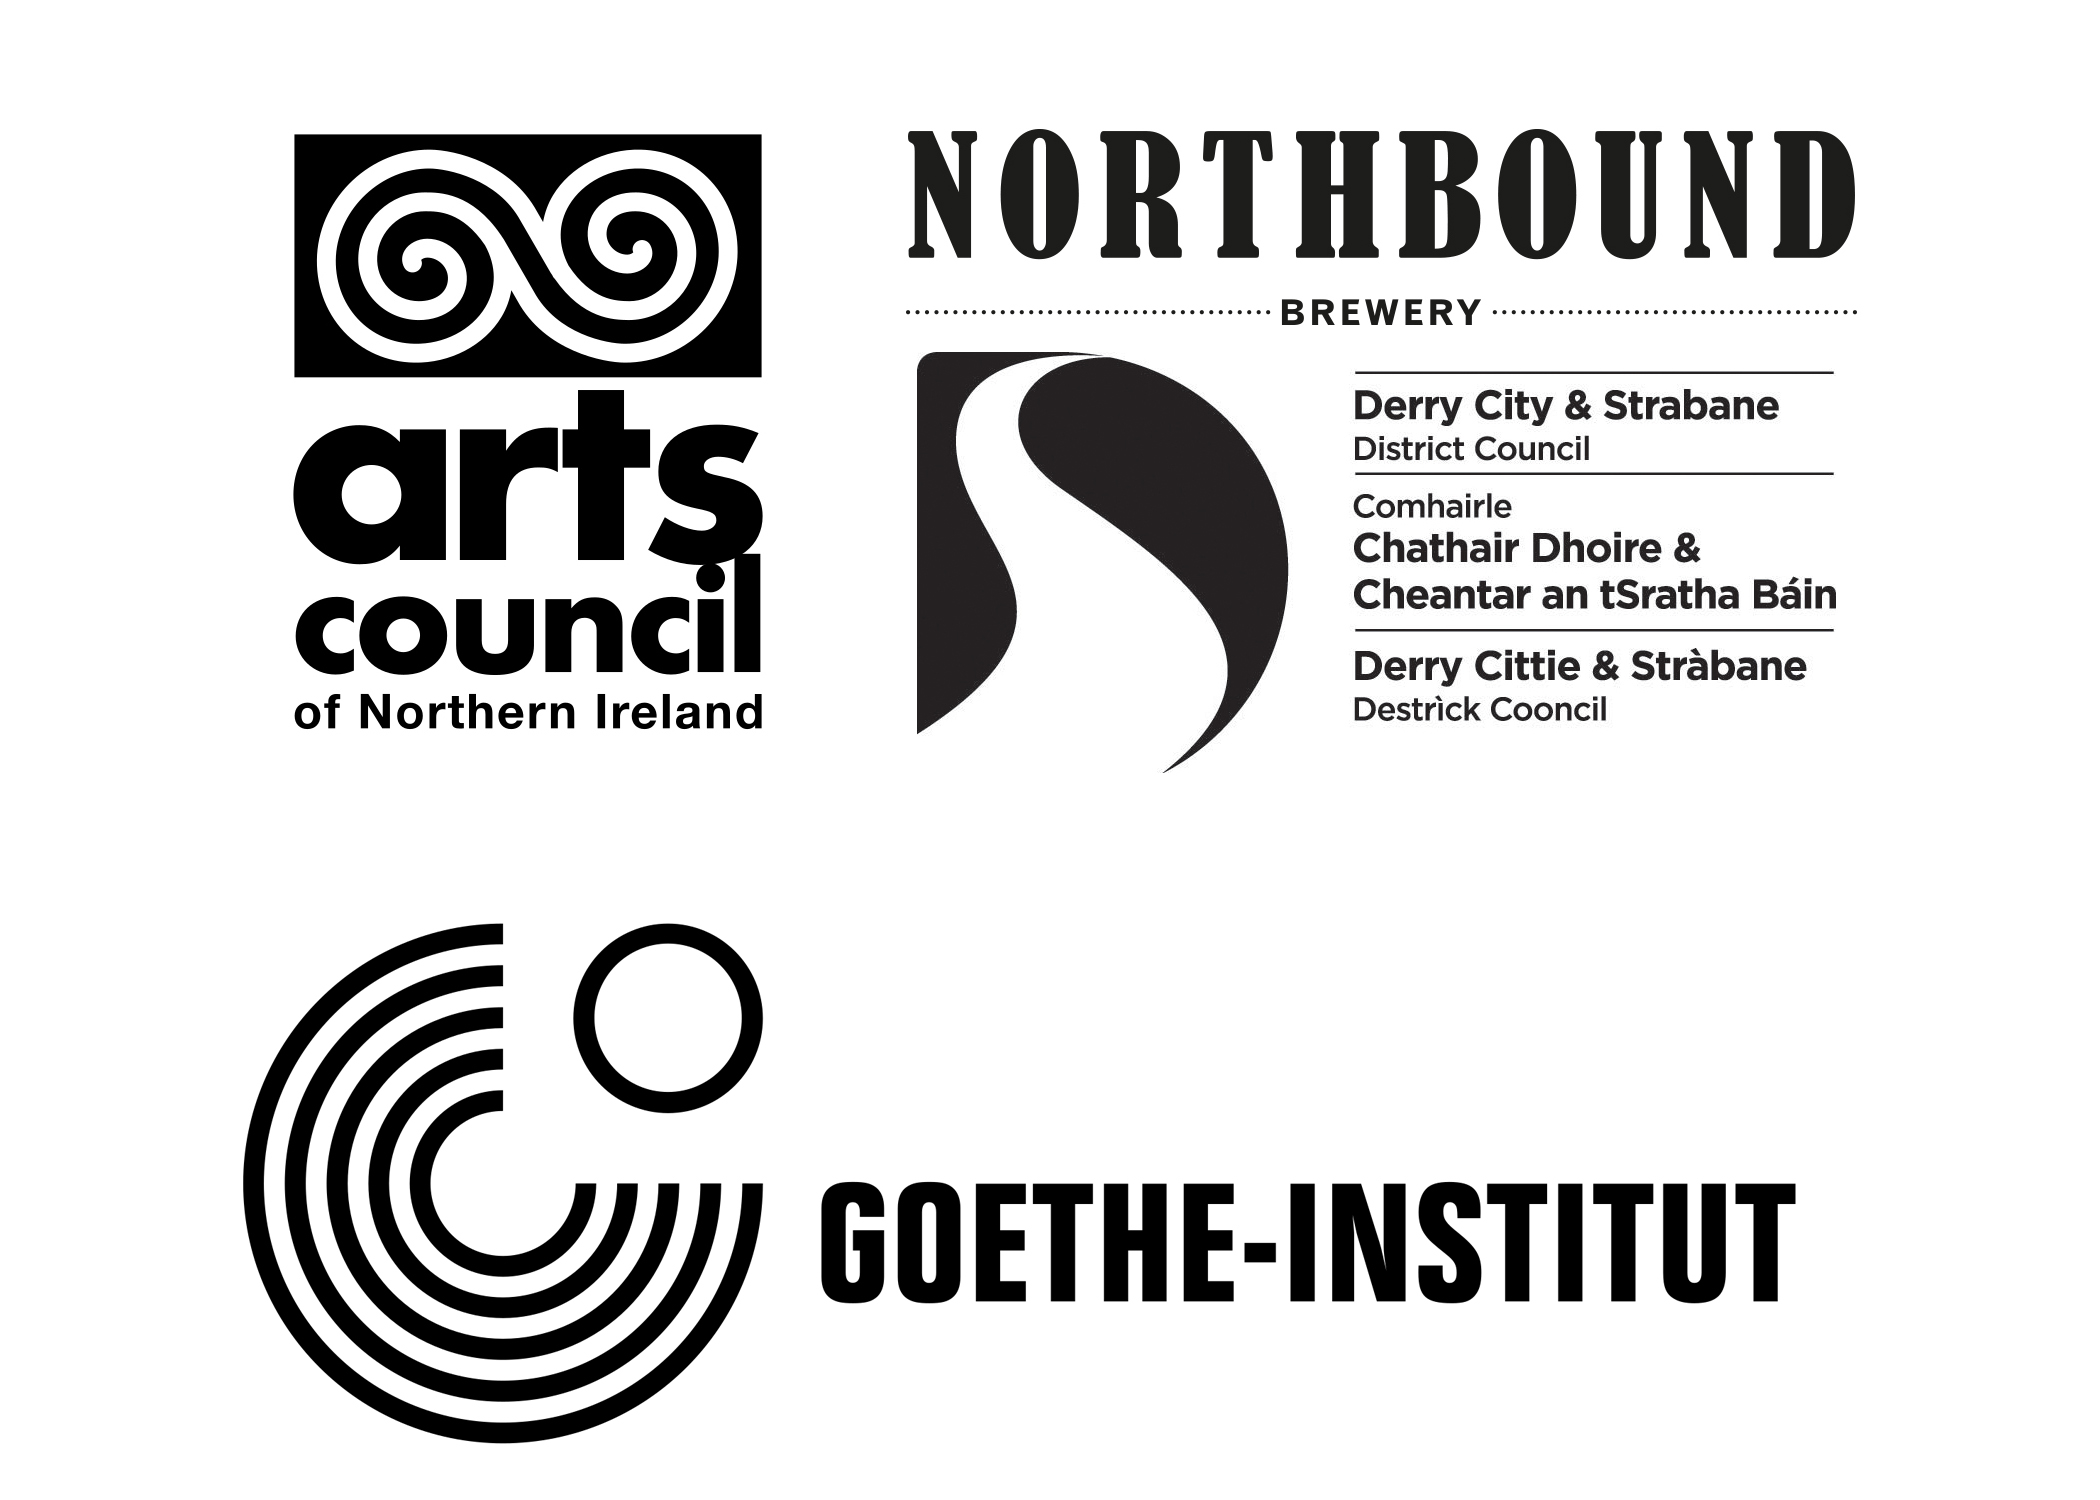 Rosa Barba funder logos for exhibition at Void Gallery, Derry, 2018